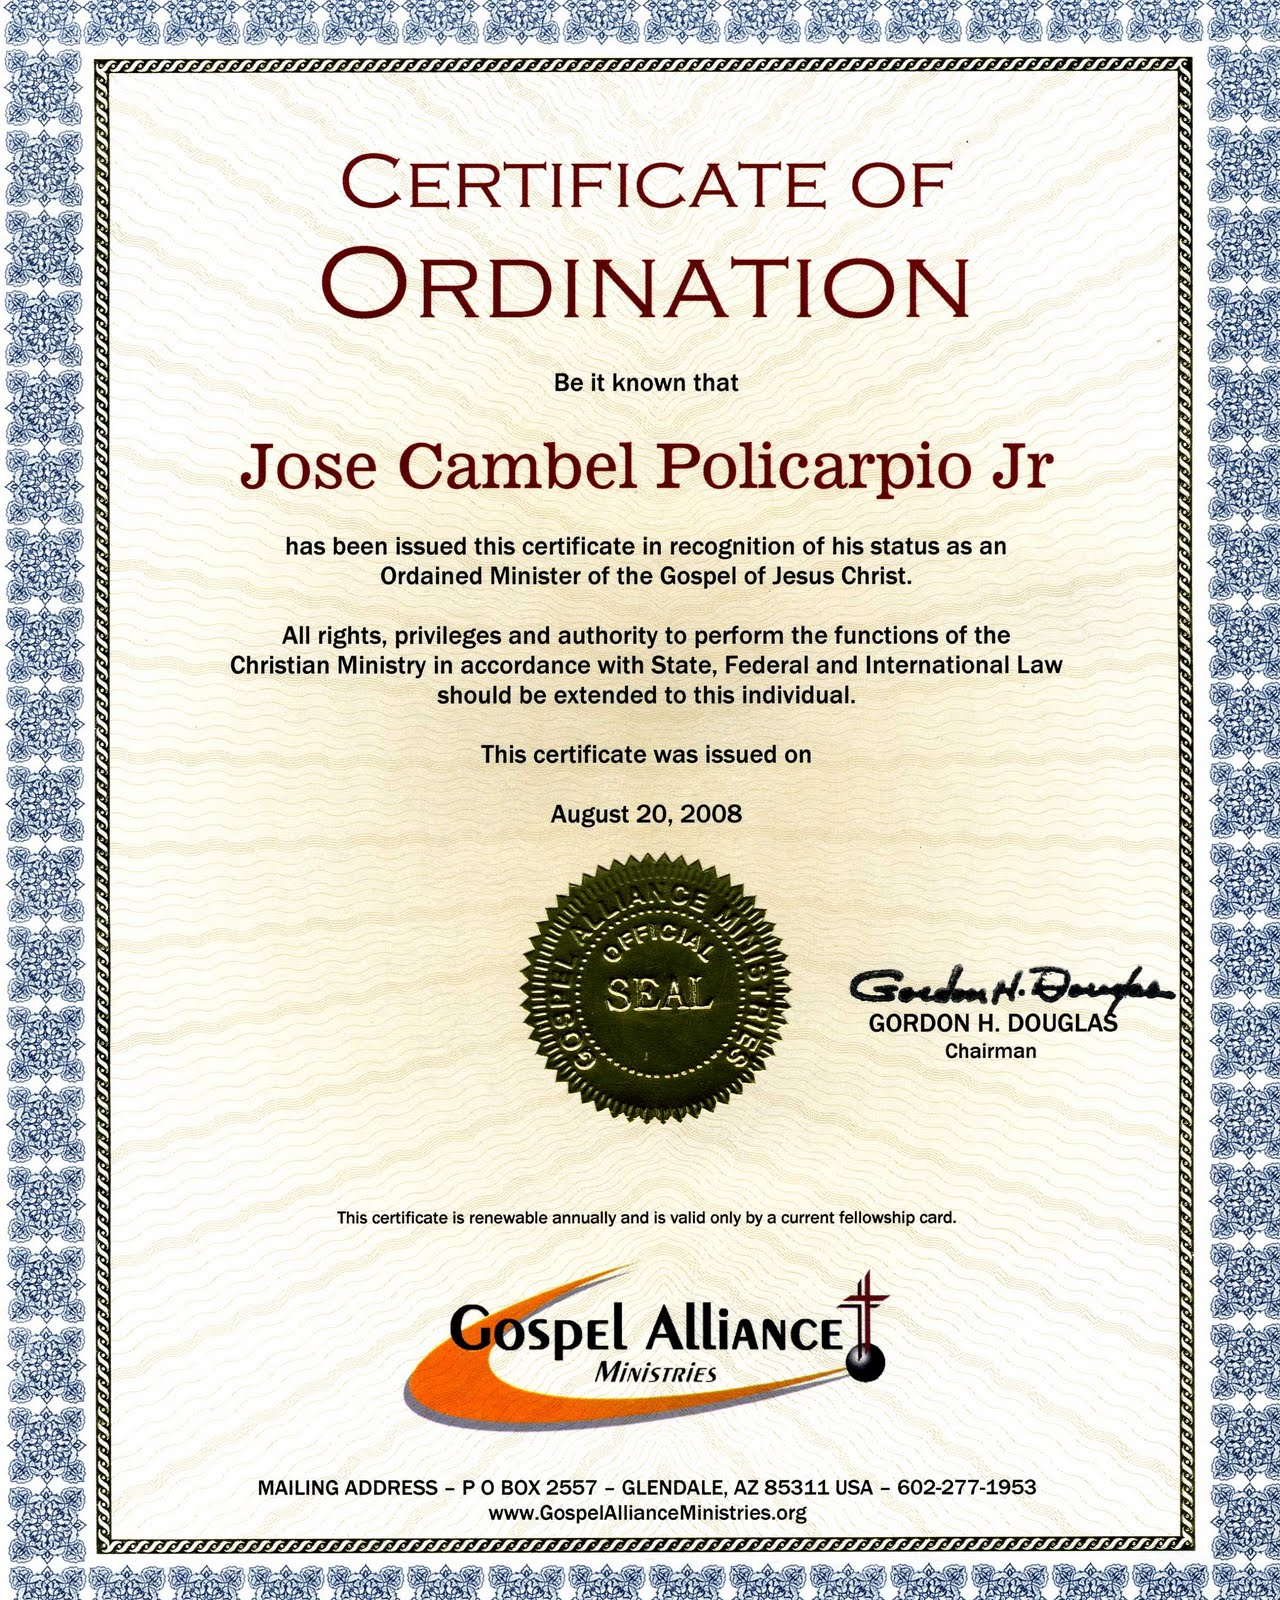 Certificate of Ordination - Rev. Jun Policarpio